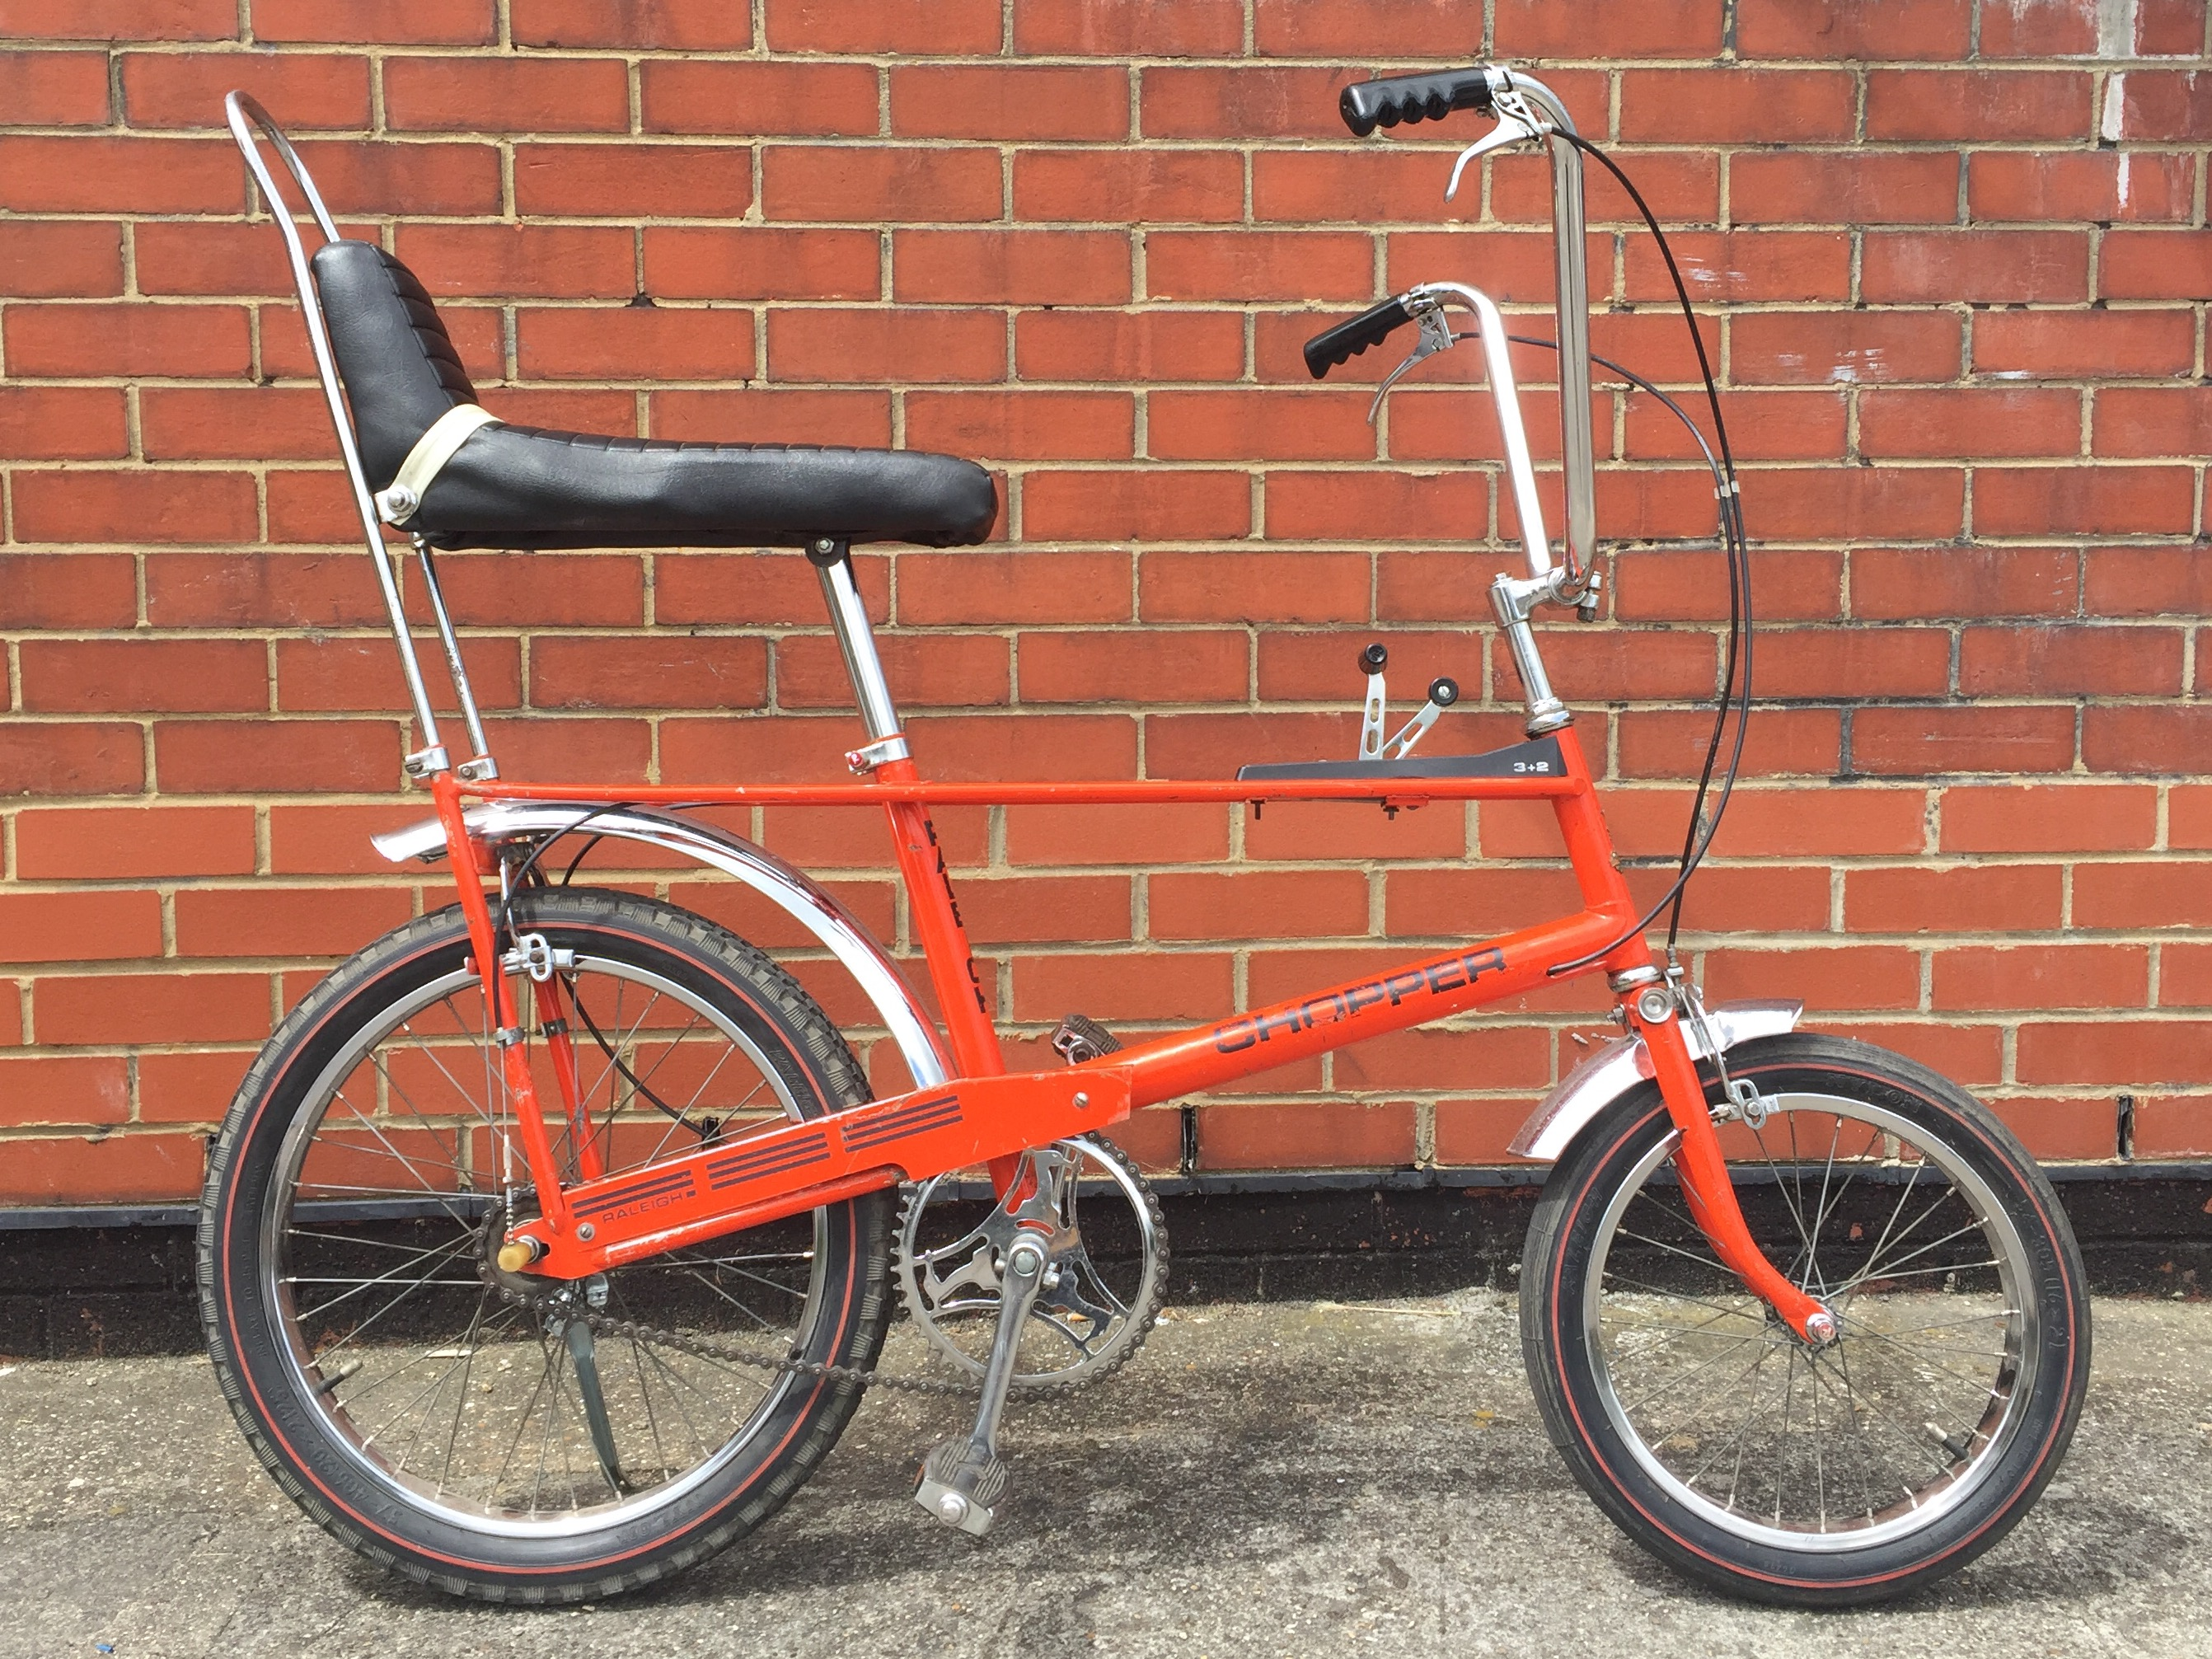 712140baa10 Raleigh Chopper - Wikipedia